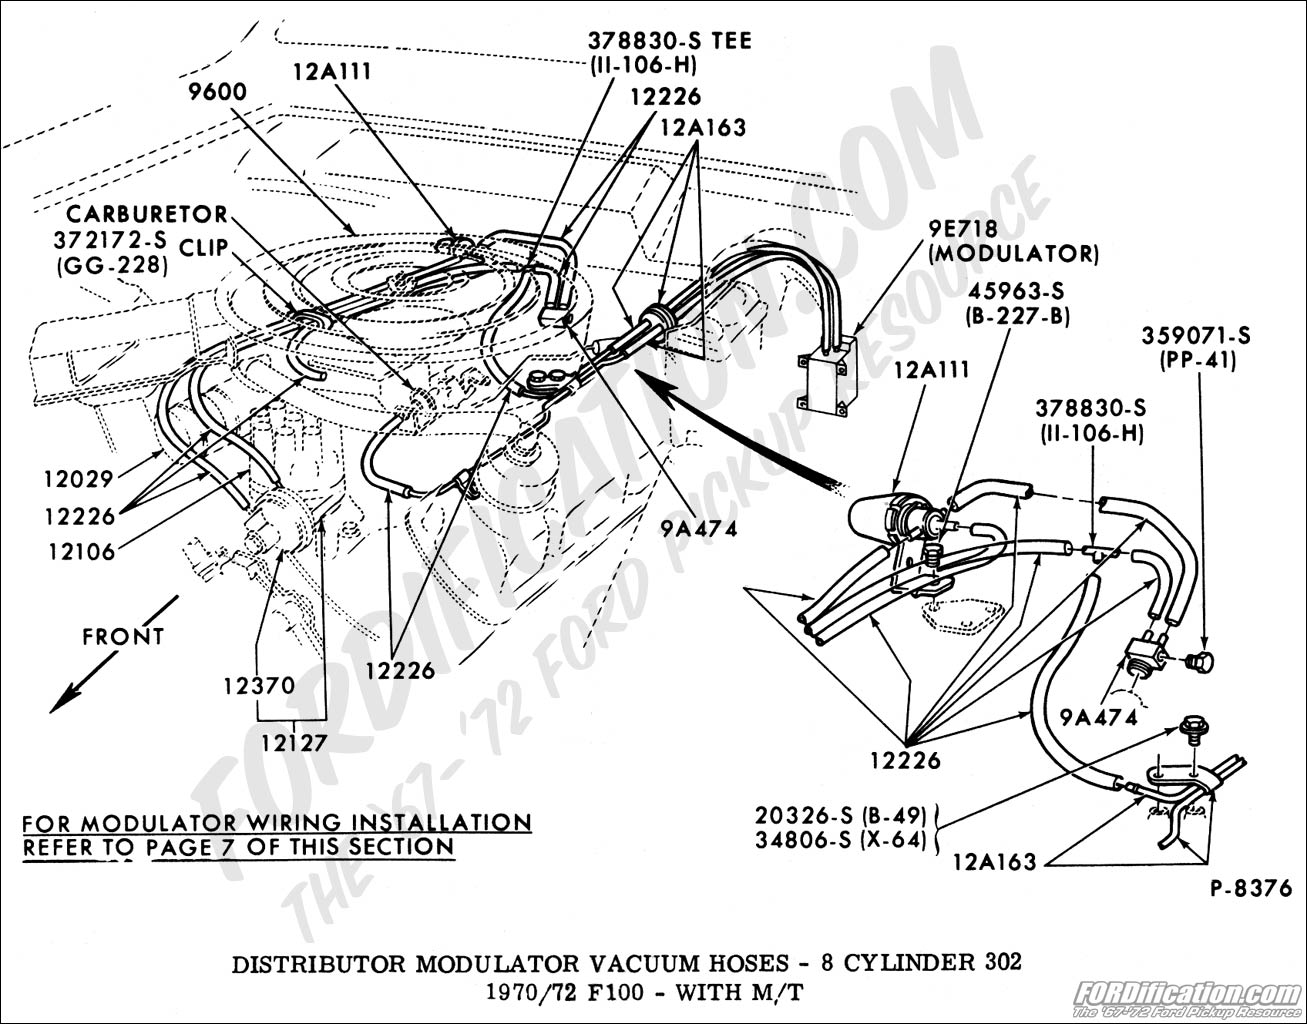 Cam Position Sensor and Sync Pulse Stator furthermore 2003 Impala 3 4 Engine Diagram Pulley Html moreover Dodge Front Differential Diagram moreover 2006 Volkswagen Passat 3 6l Serpentine Belt Diagrams also 1994 Acura Integra Engine Diagram. on 2004 dodge ram 1500 belt routing diagram